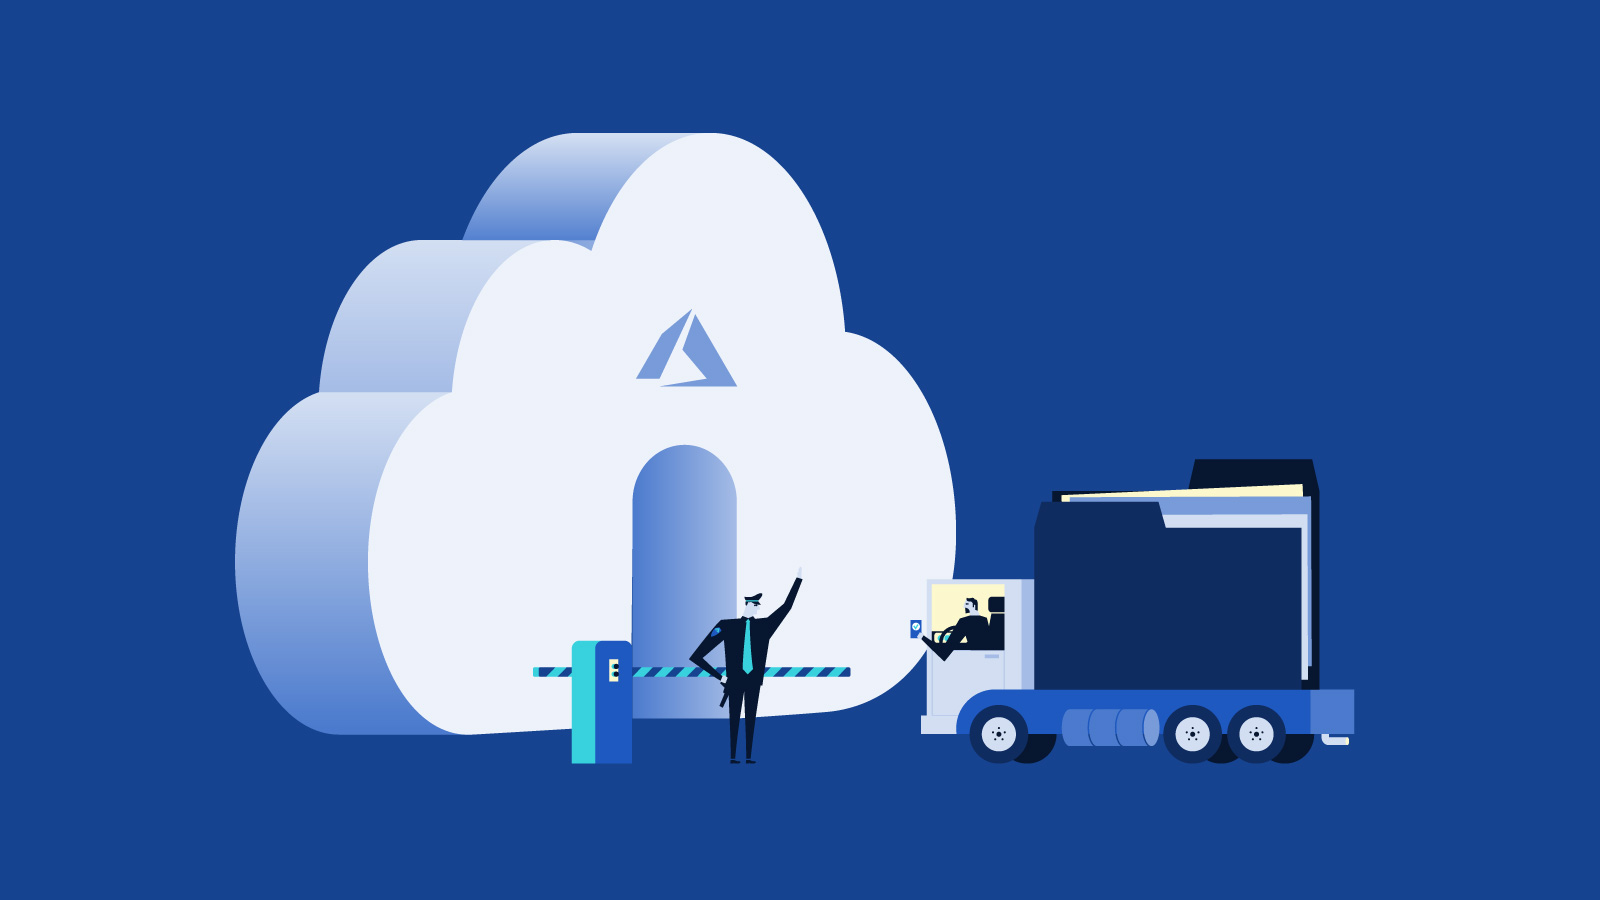 Introduction to Azure: Archiving Data in Azure. Securely storing enterprise data in the cloud